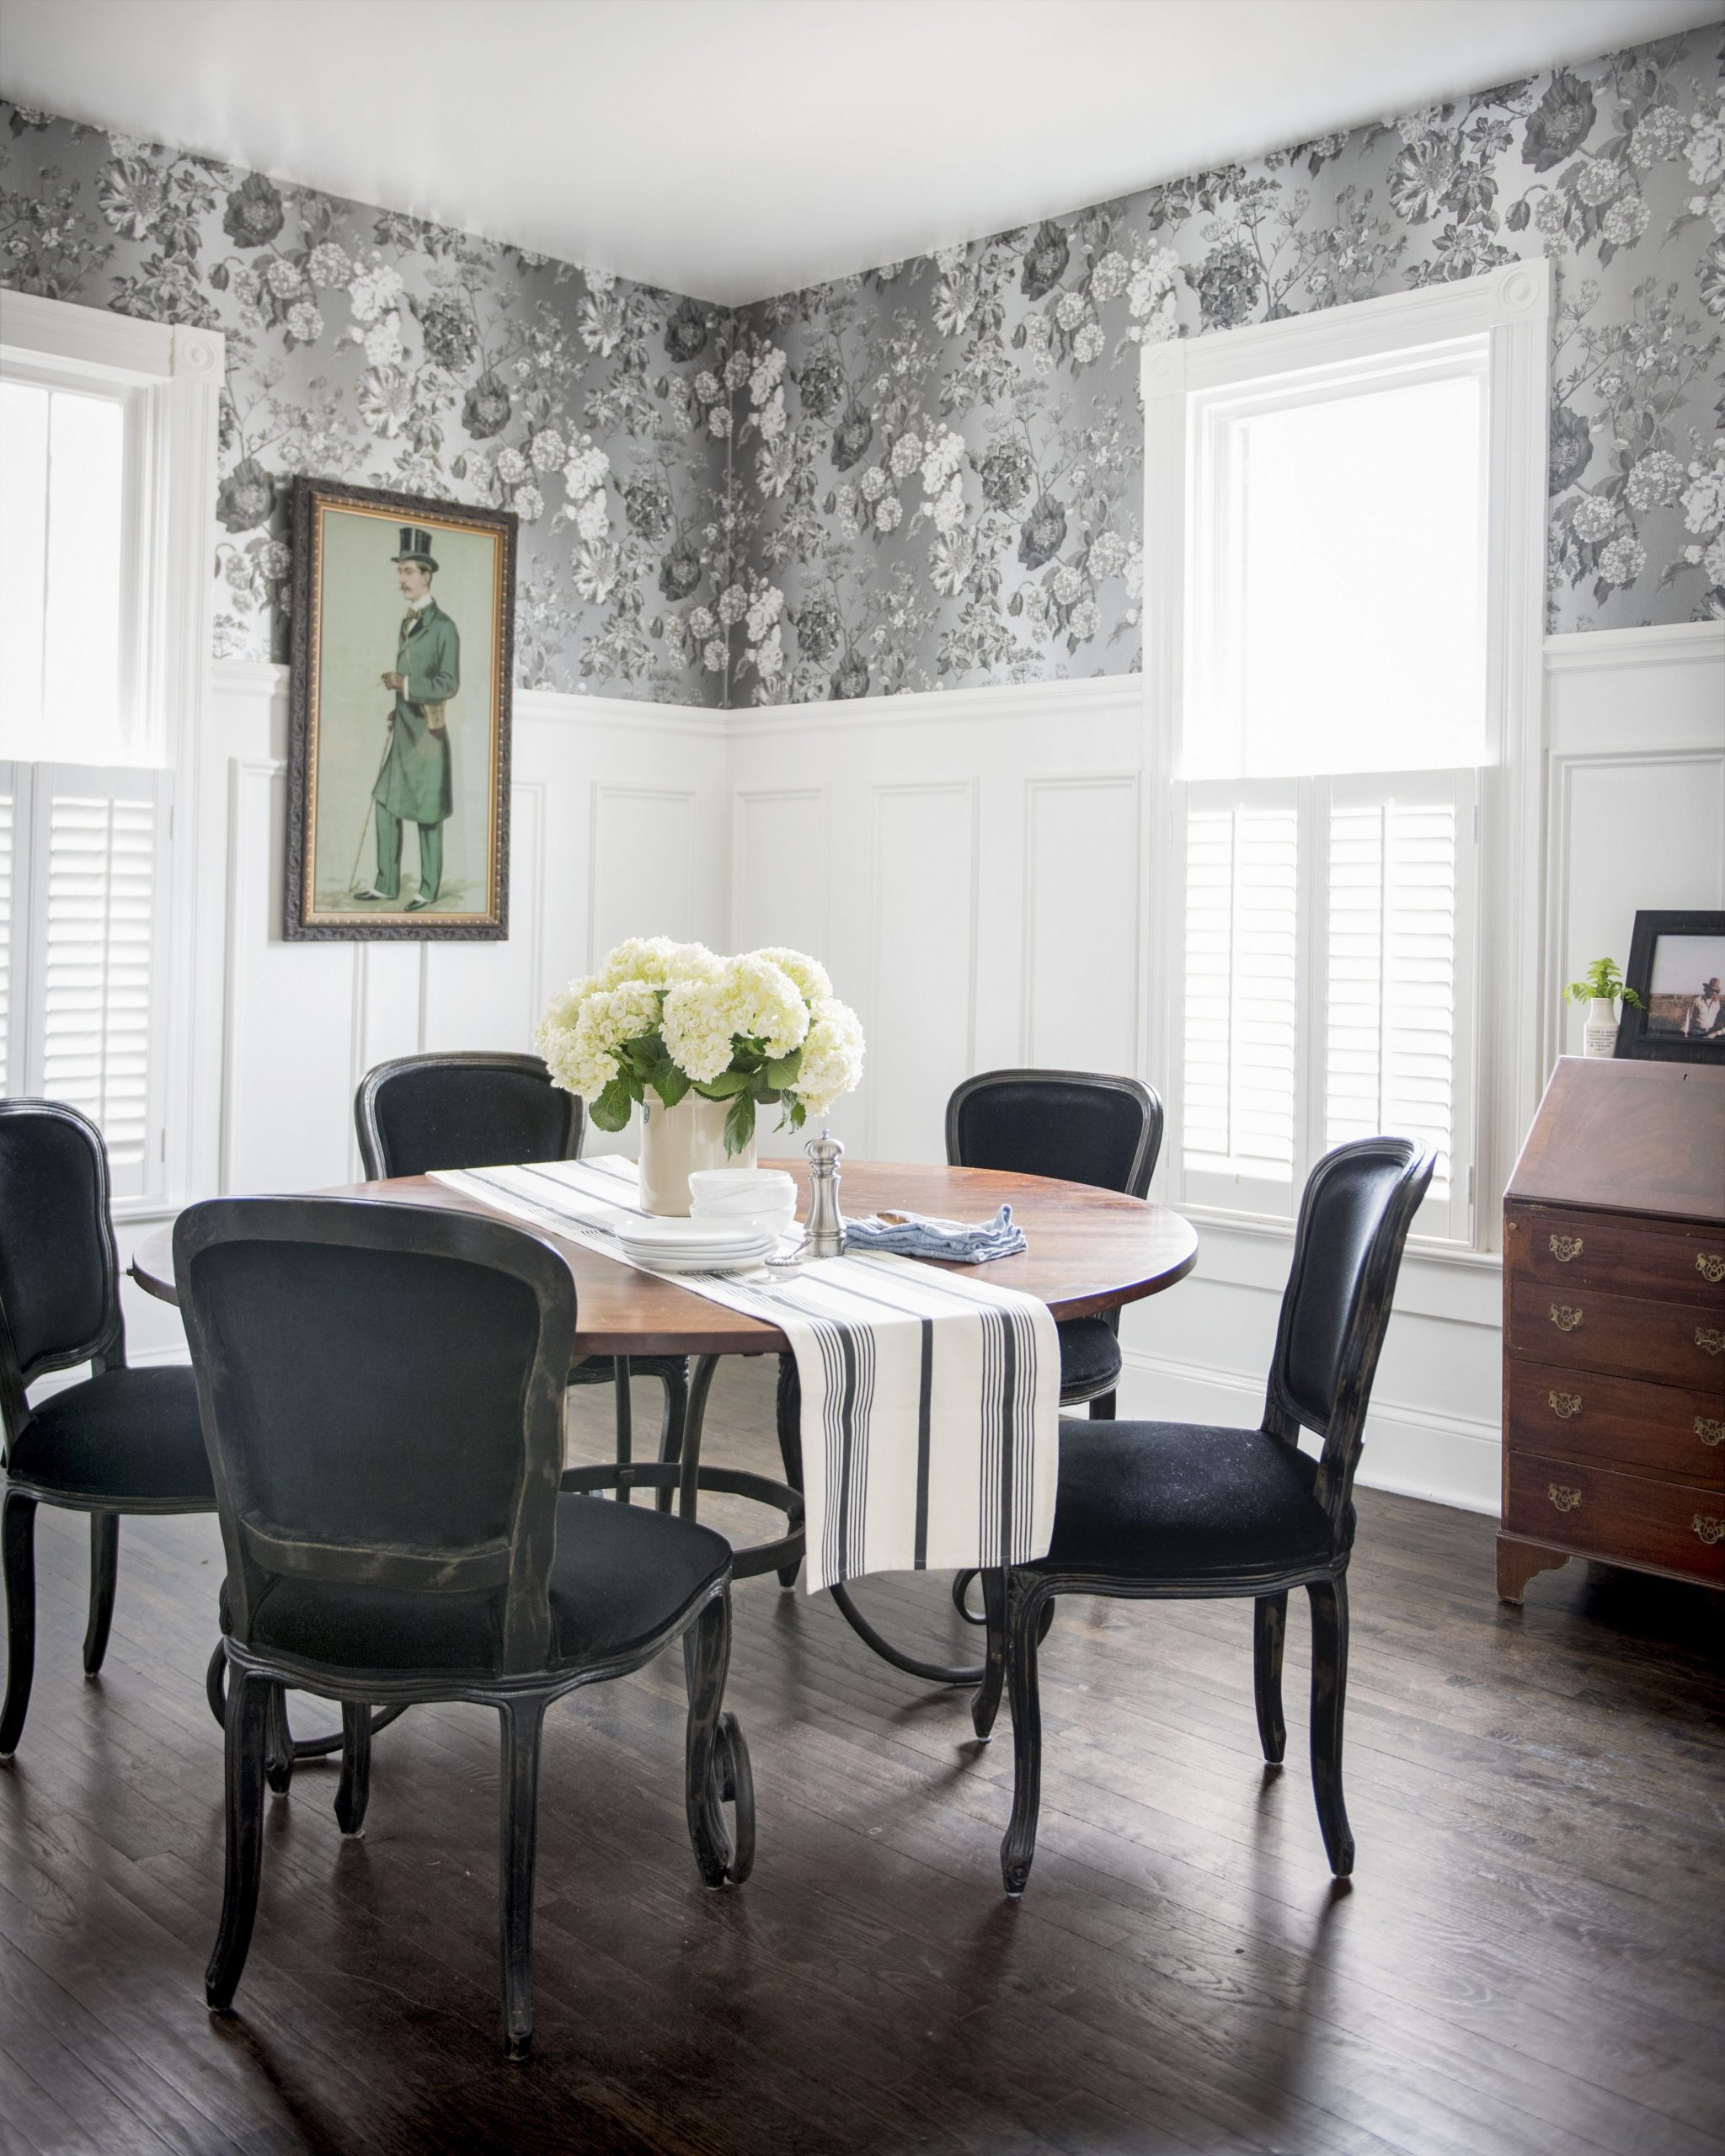 10 Best Dining Room Decorating Ideas - Pictures of Dining Room Decor - Dining Room Ideas Round Table